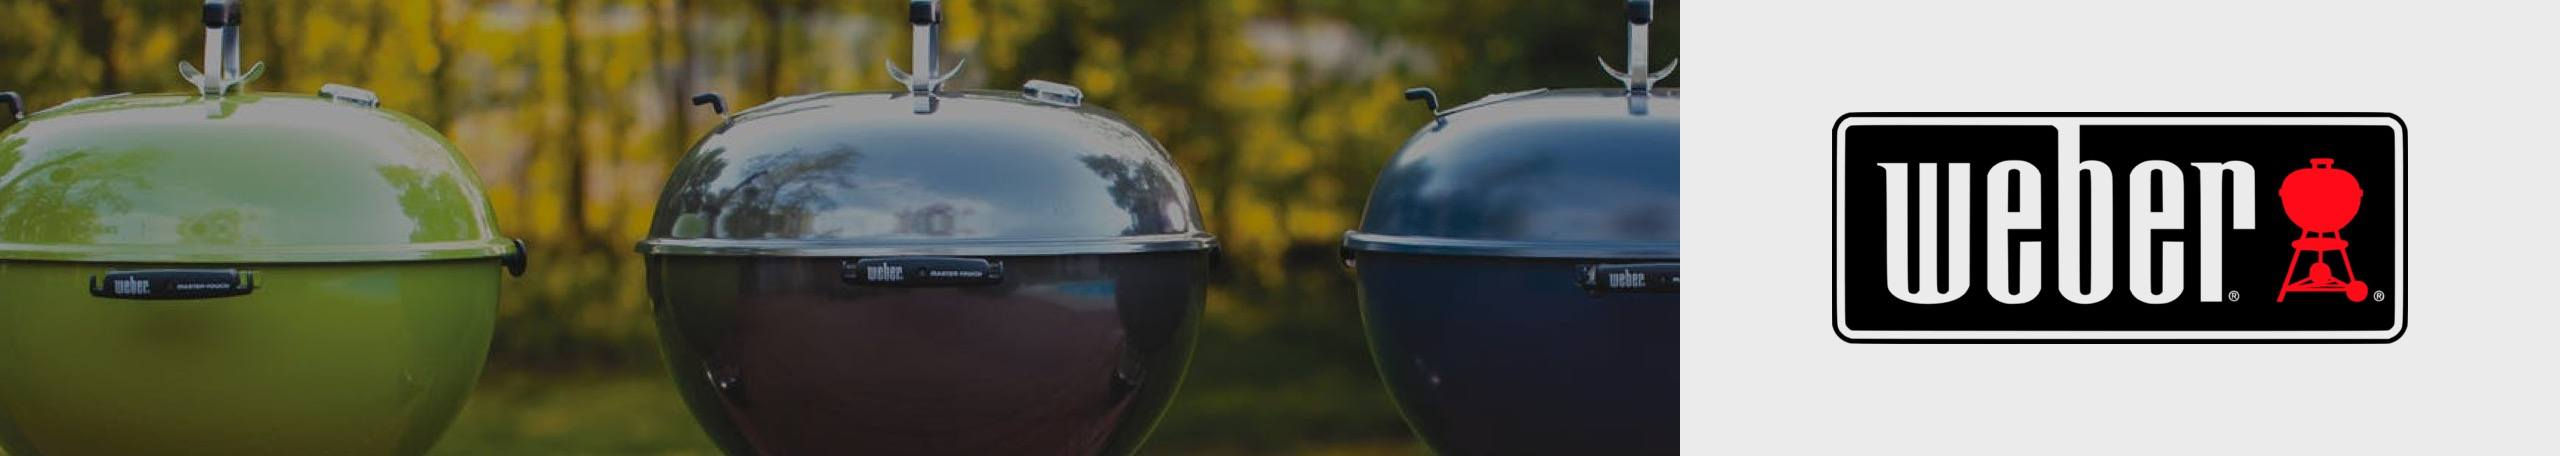 More info about Weber grills at Gilbert's